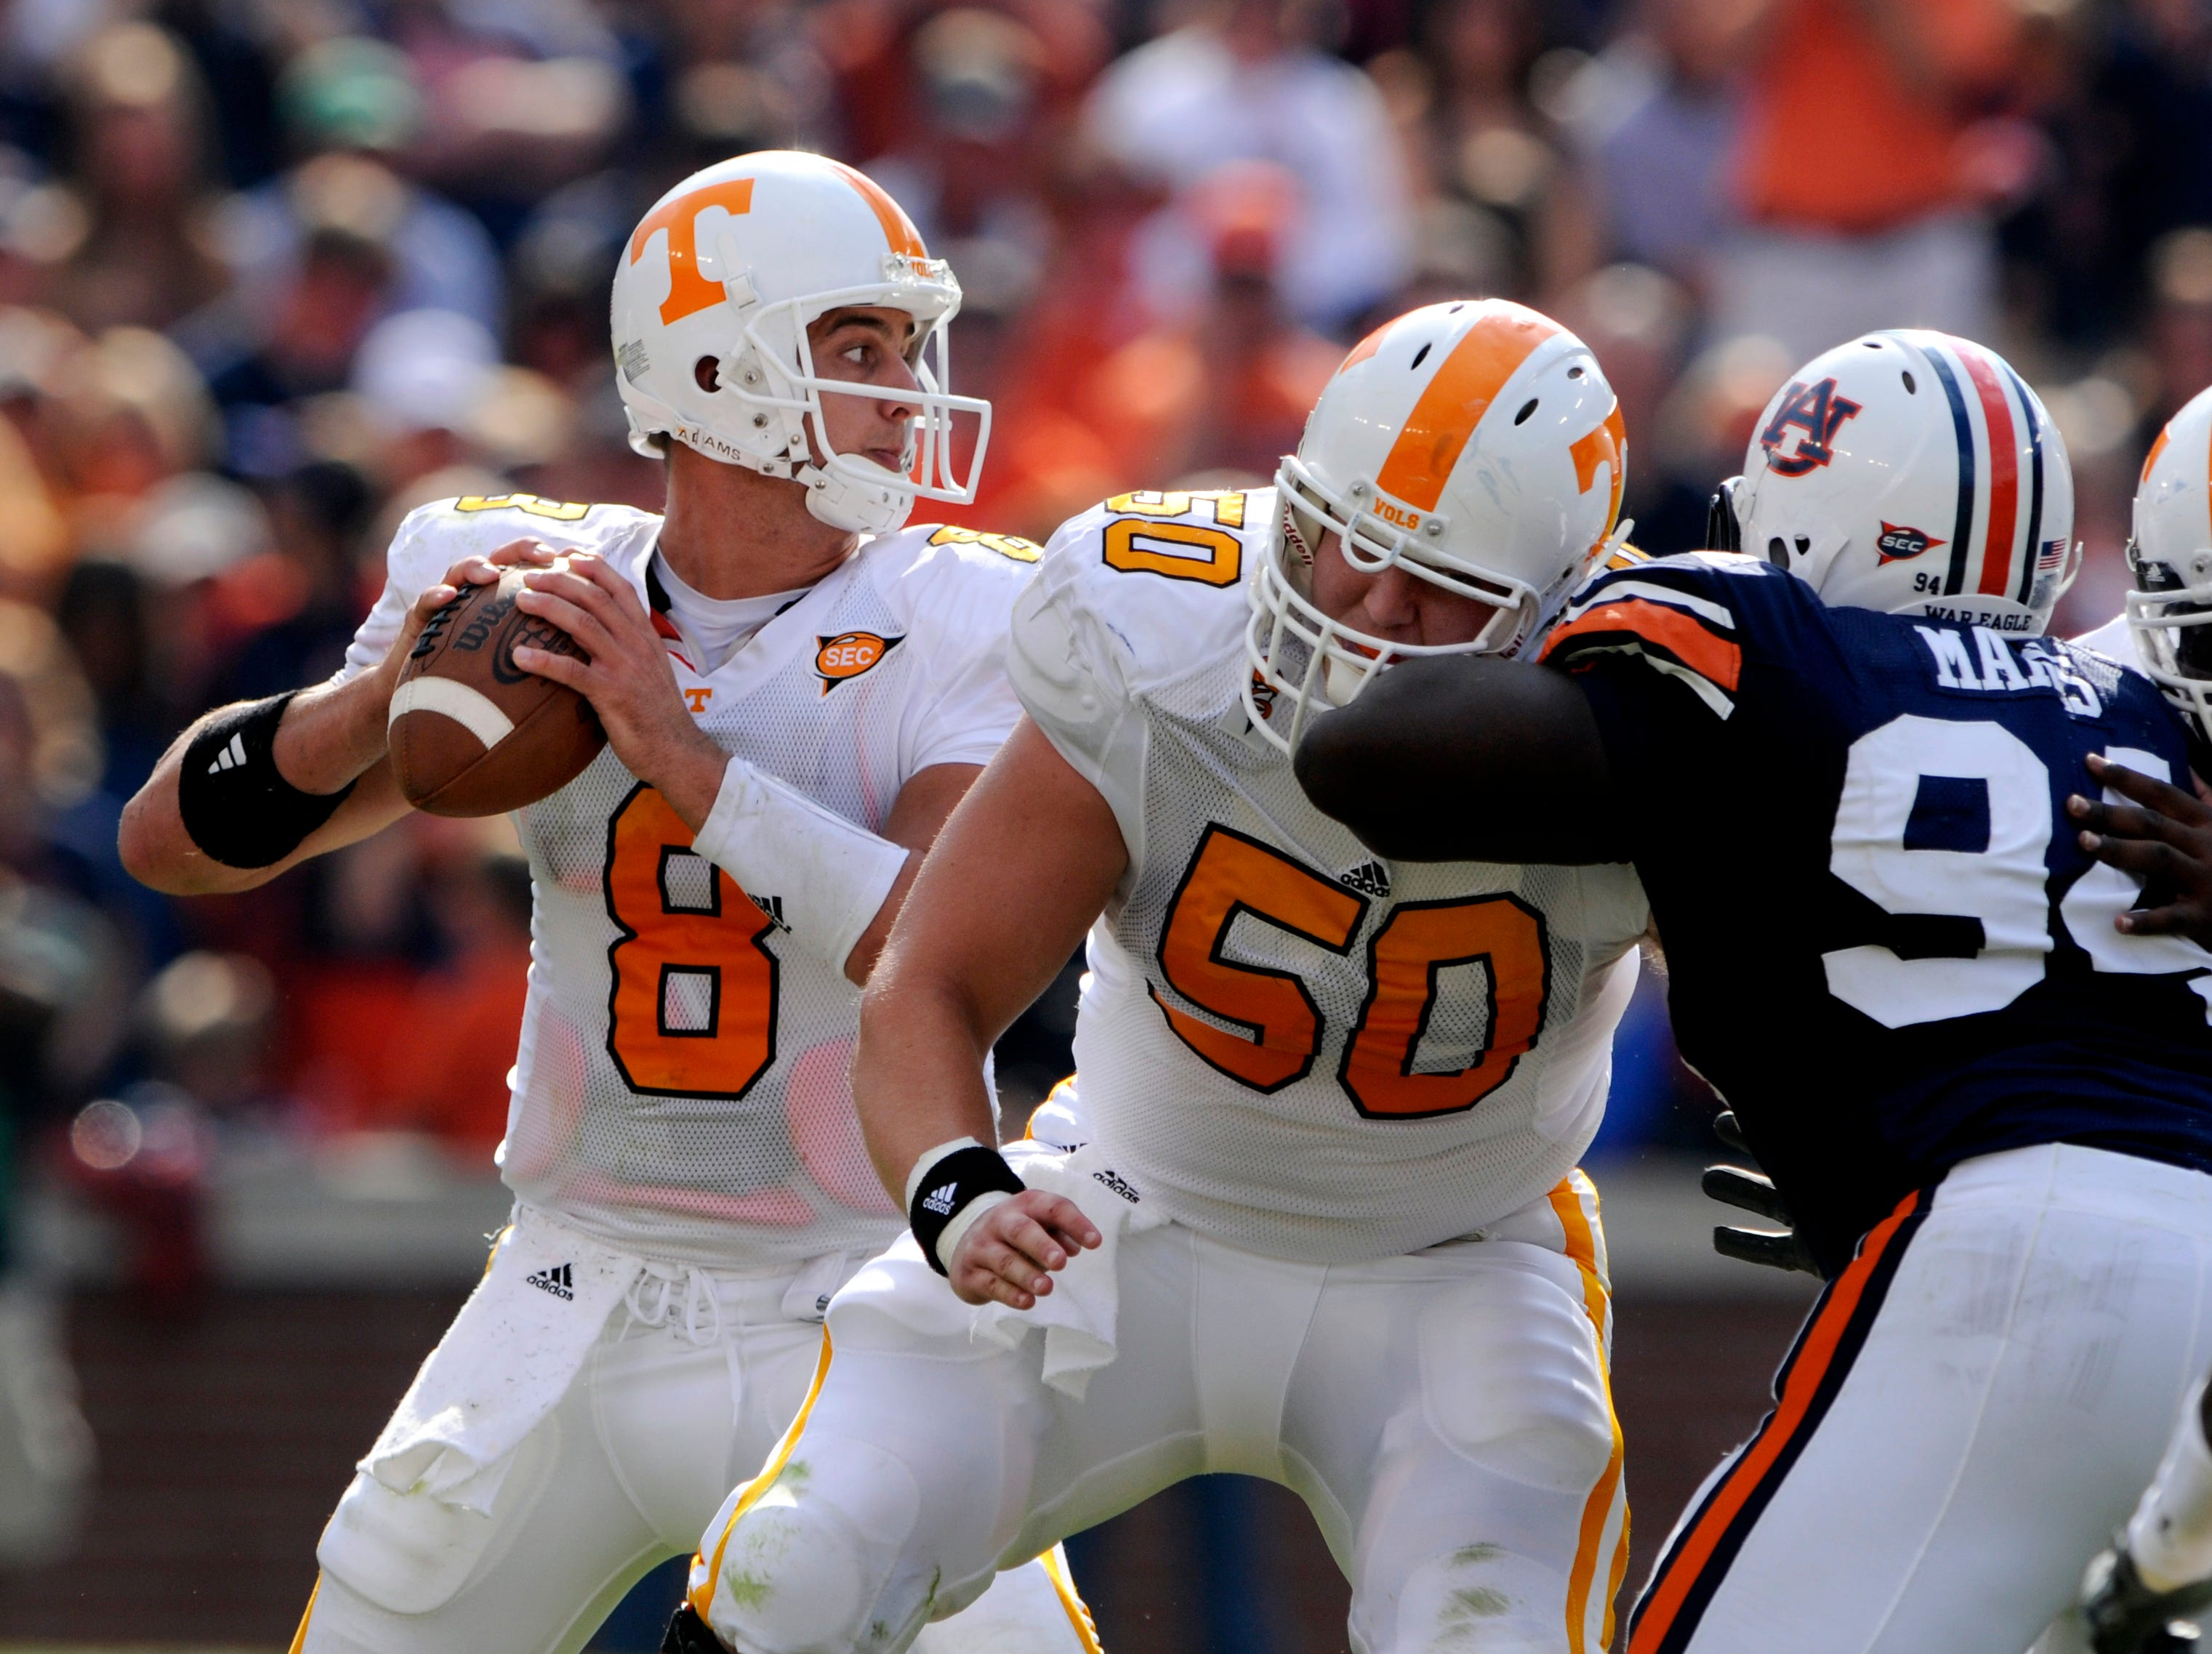 Tennessee center Josh McNeil (50) protects quarterback Jonathan Crompton (8) against Auburn Saturday at Jordan-Hare Stadium in Alabama in 2008. Auburn won  14-12, dropping Tennessee to 1-3 for the season.